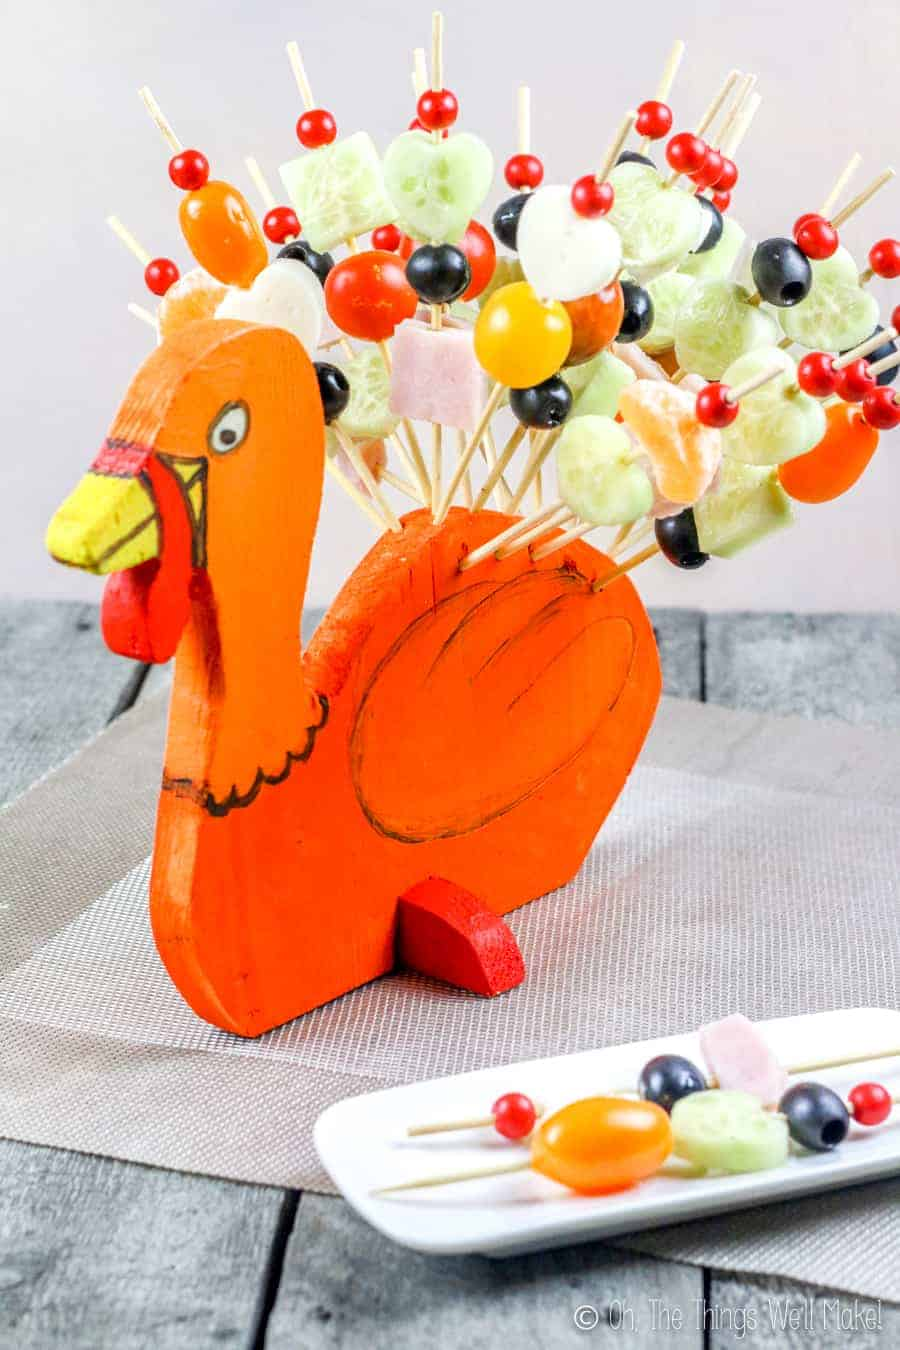 A turkey-shaped display holder with skewers filled with fruits, vegetables, ham, and cheese